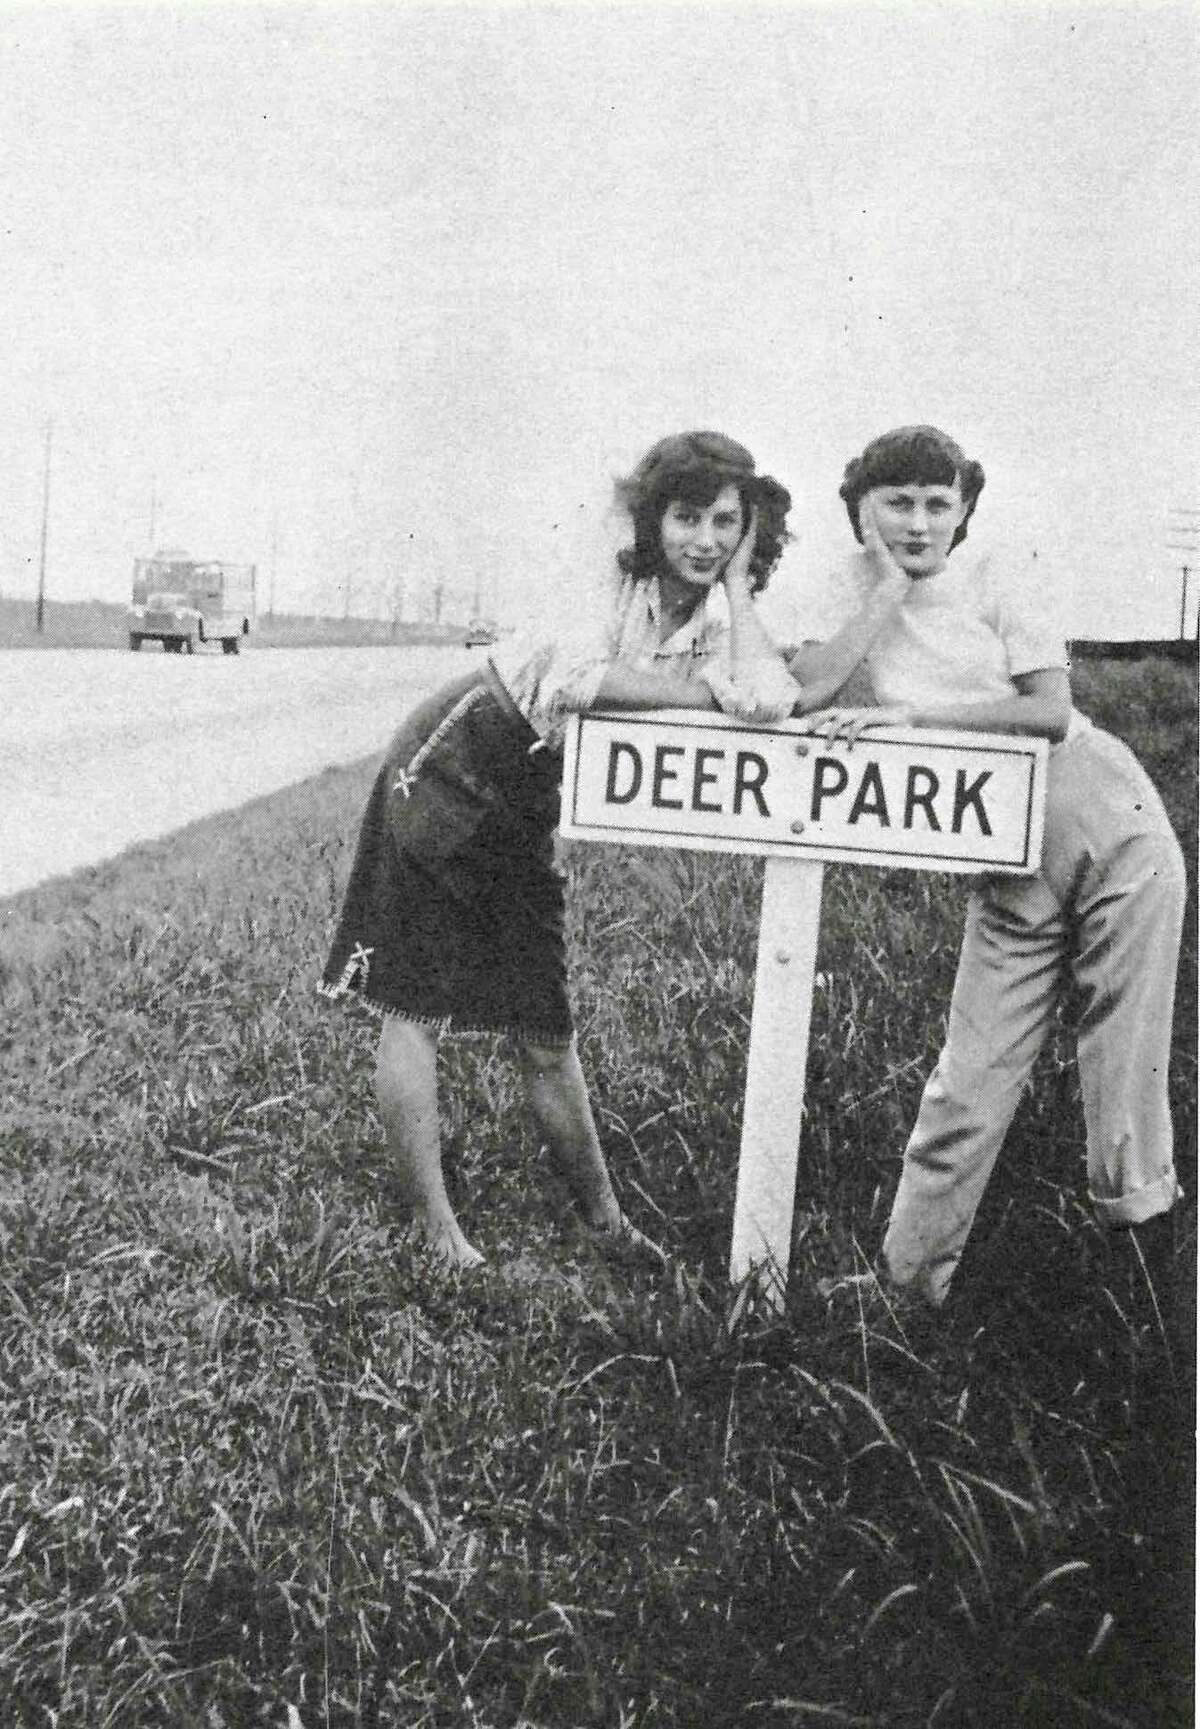 The Deer Park Historical Committee shared some historical photos that it's been posting on its Facebook page. Each post generates detailed, pride-filled conversation about days long gone and the lives of the people who helped build the city.